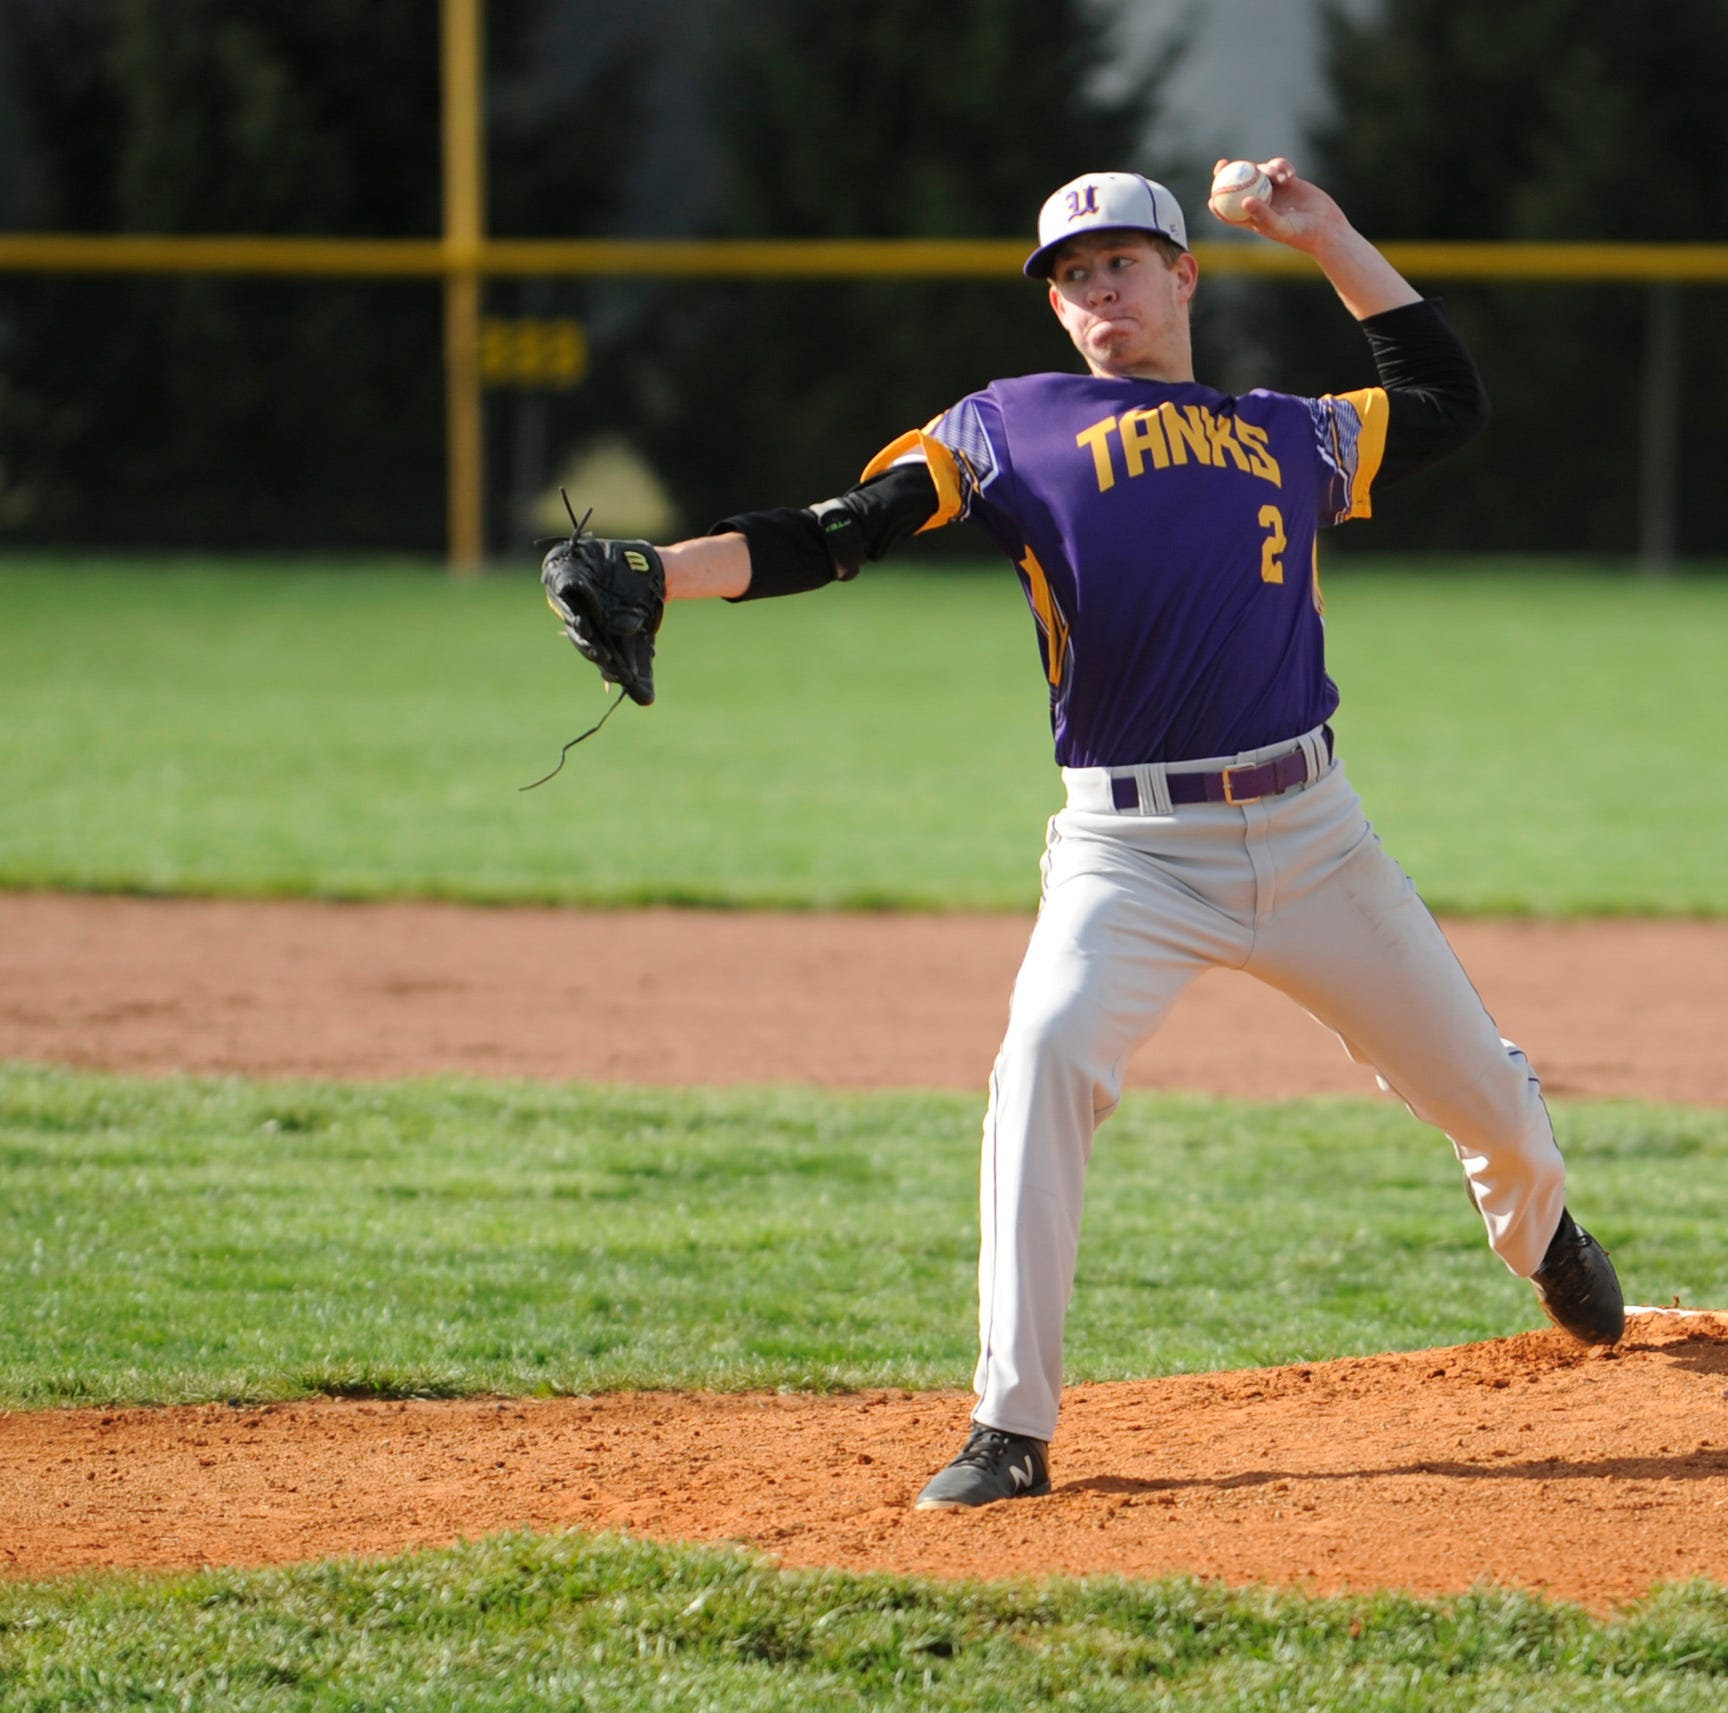 OHIO HS BASEBALL: Unioto outlasts Adena 1-0 in pitching duel between DeBord, Garrison